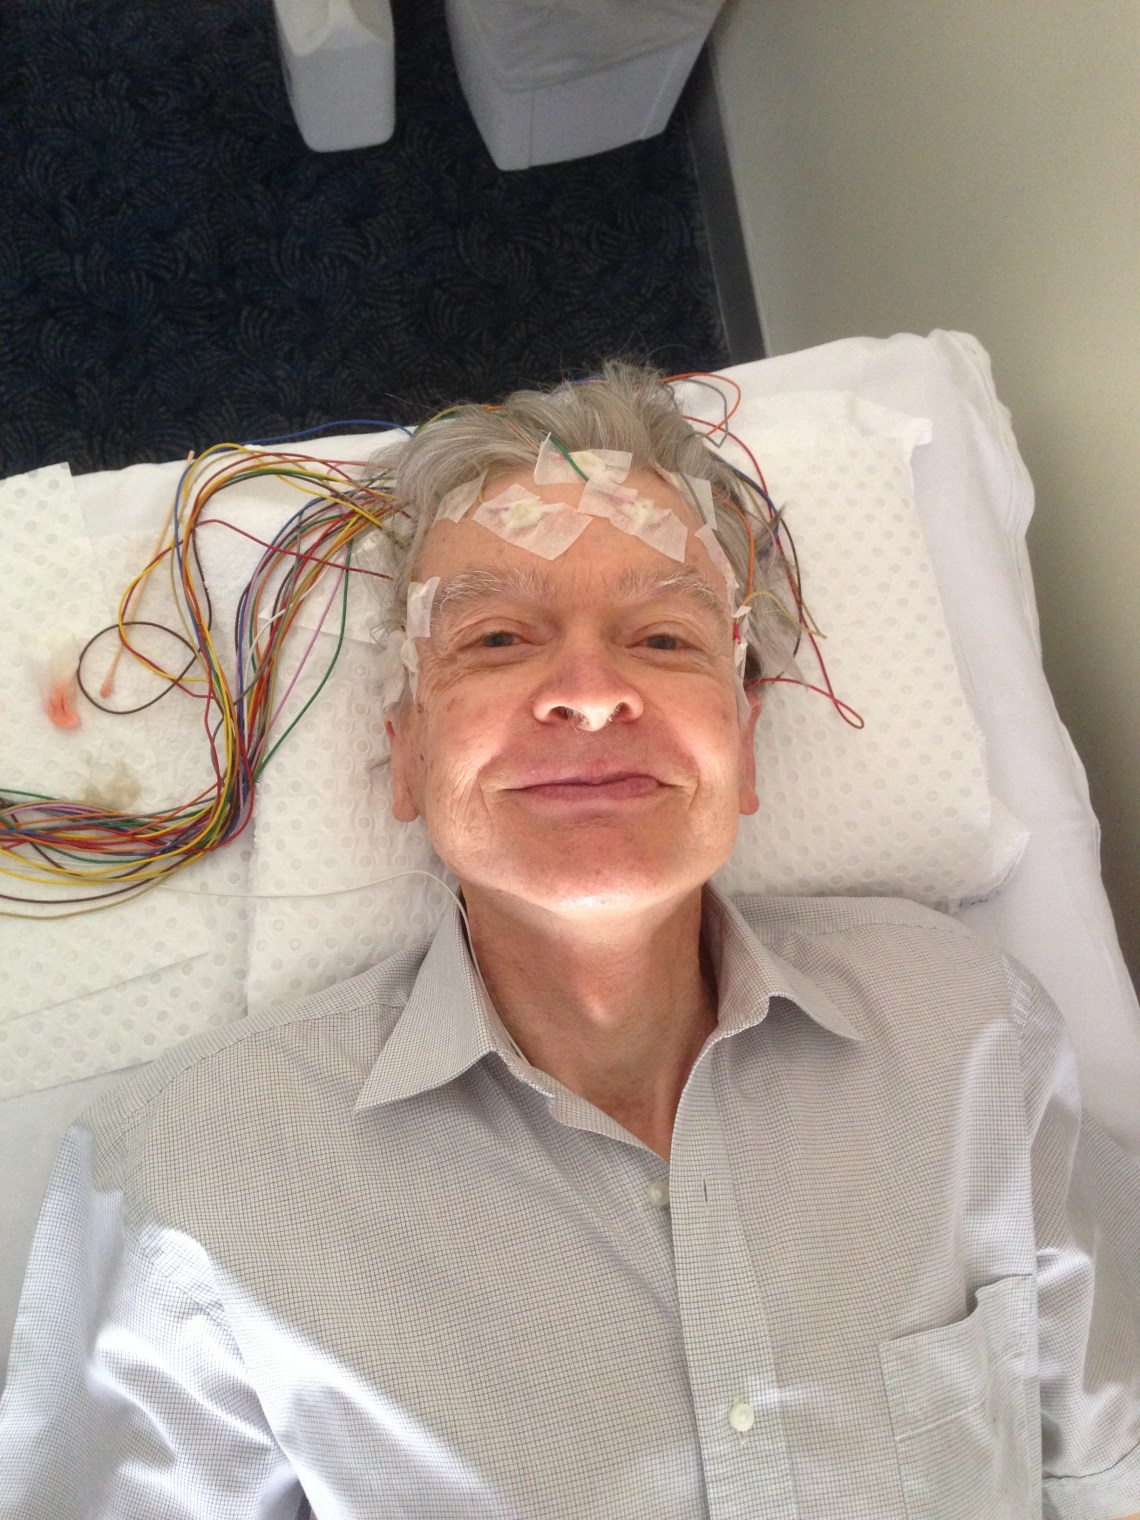 Stephen having EEG